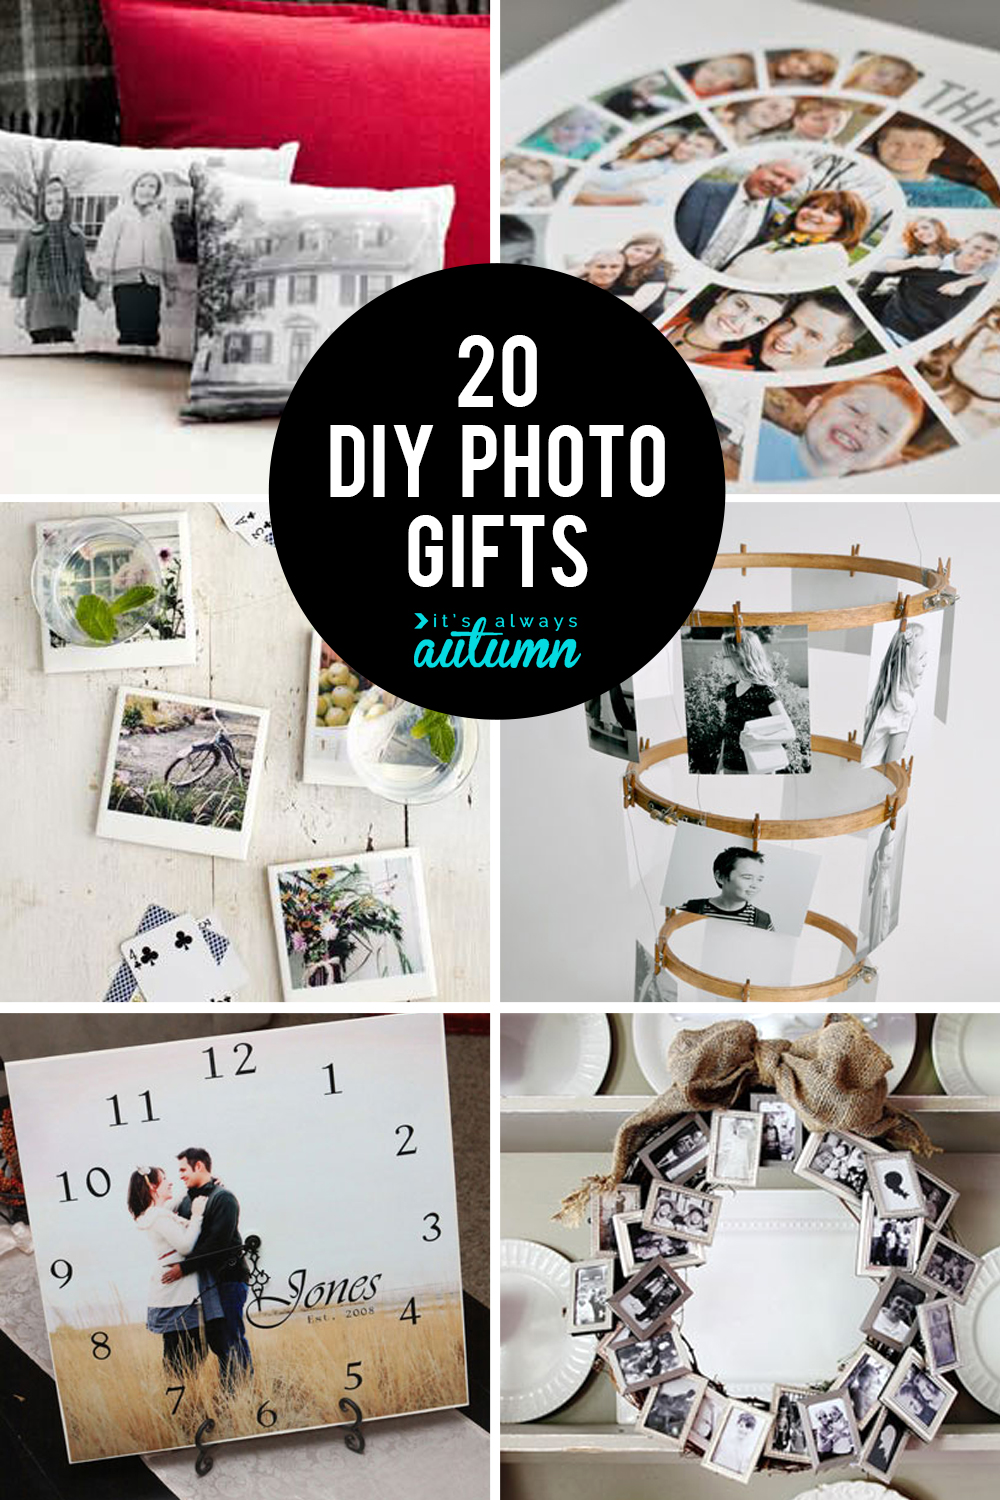 Wondrous Photo Gift Ideas Diy Photo Gifts Parents Gift Ideas Day Or Parents Gift Ideas Diy Photo Click Through Parents Who Have Everything baby Gift Ideas For Grandparents